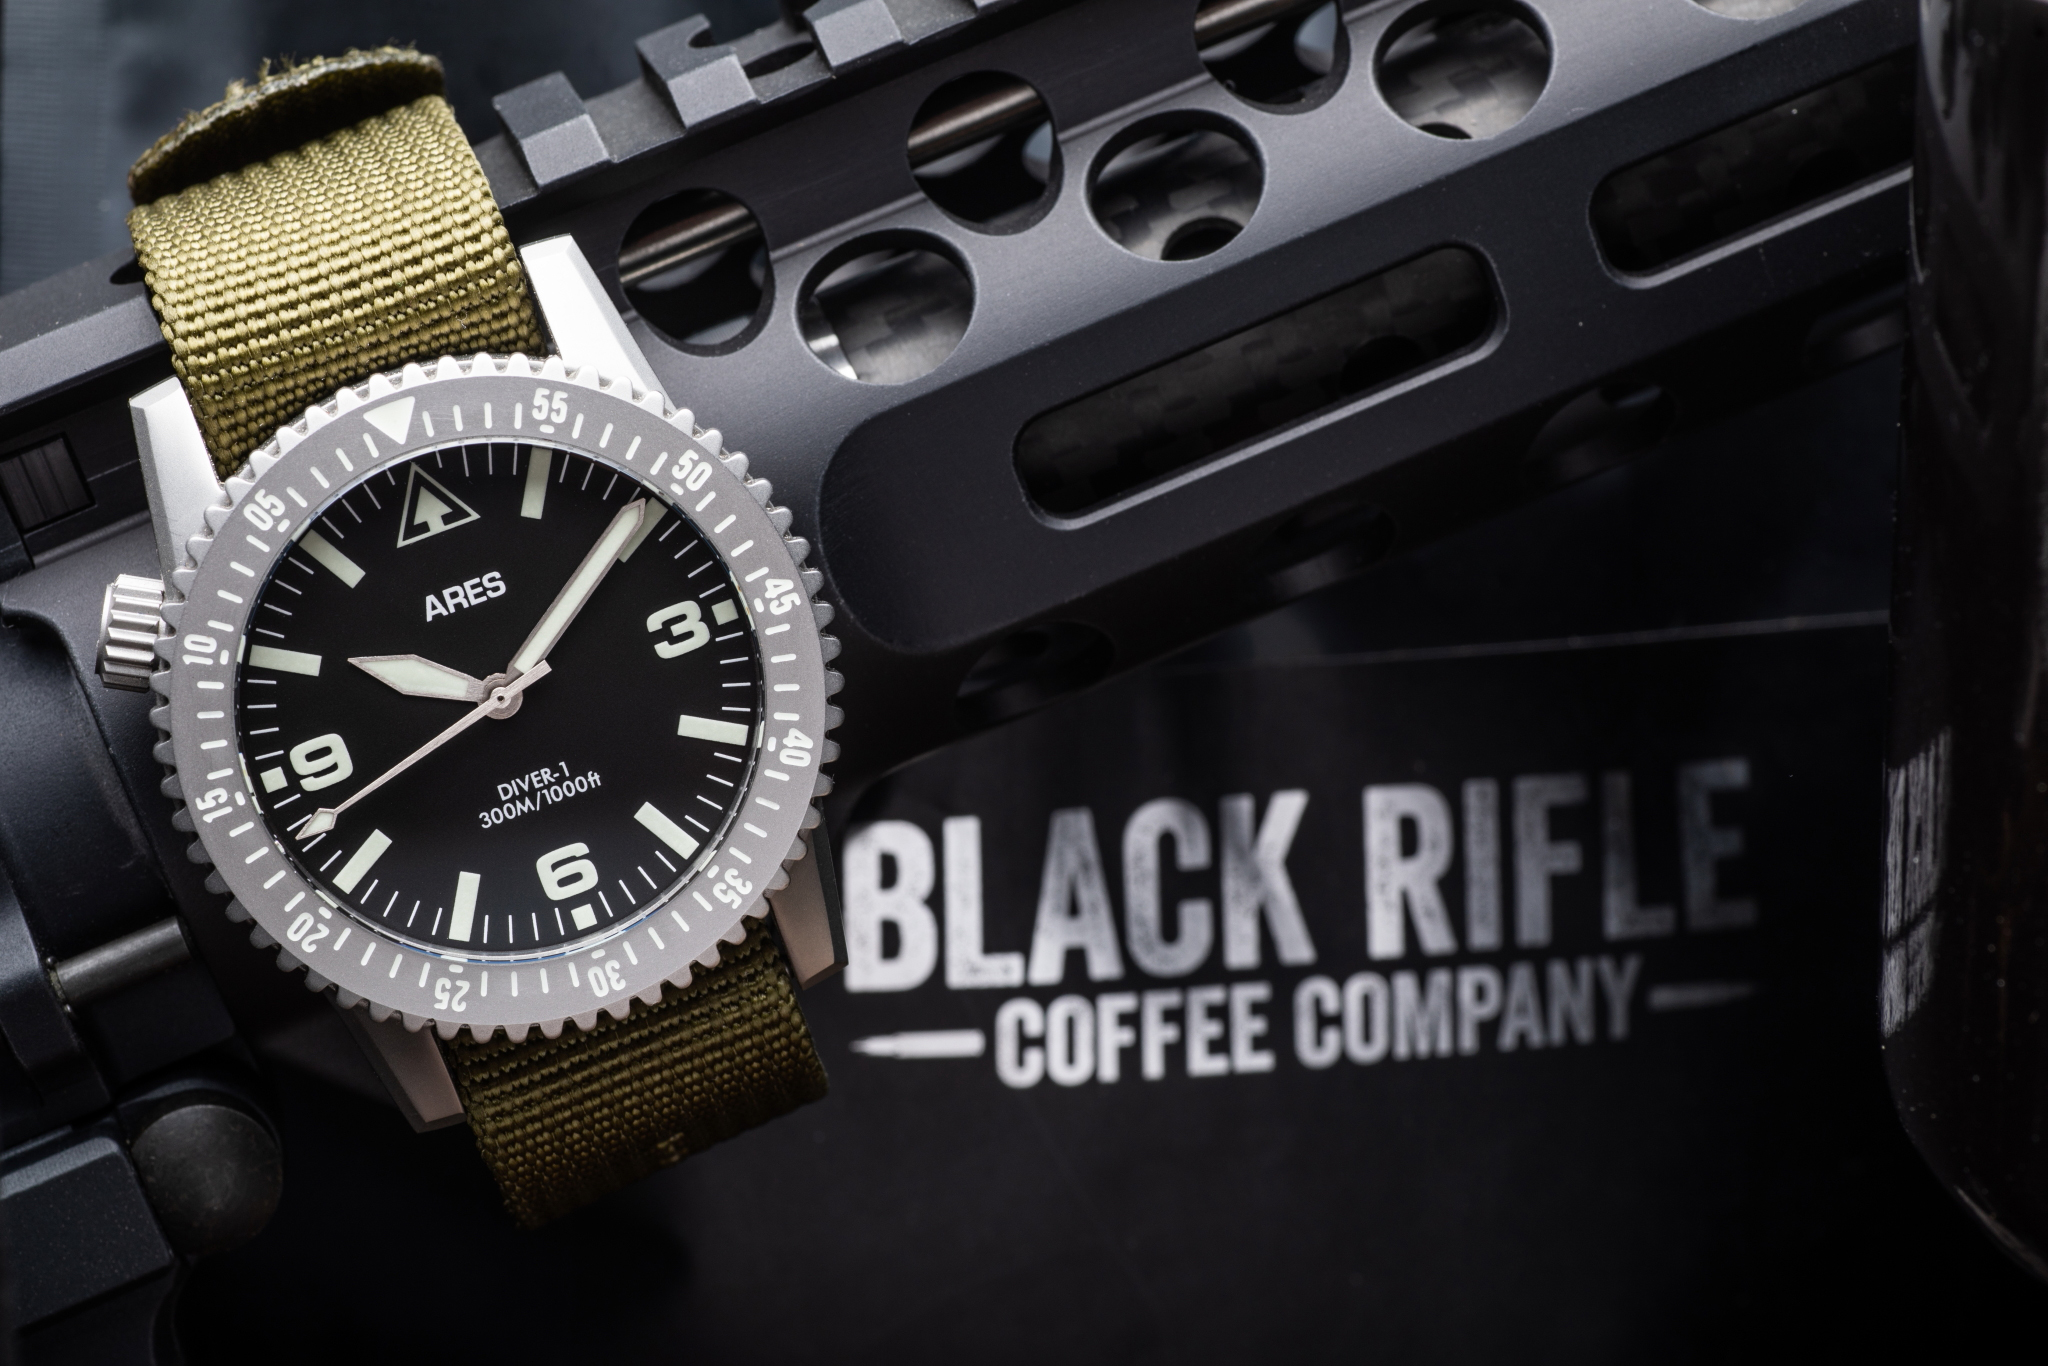 ___Ares Diver-1 BRCC 008-2048 Black Rifle Coffee Company Promotion edited by Brand G Creative 13 NOV 2018.jpg